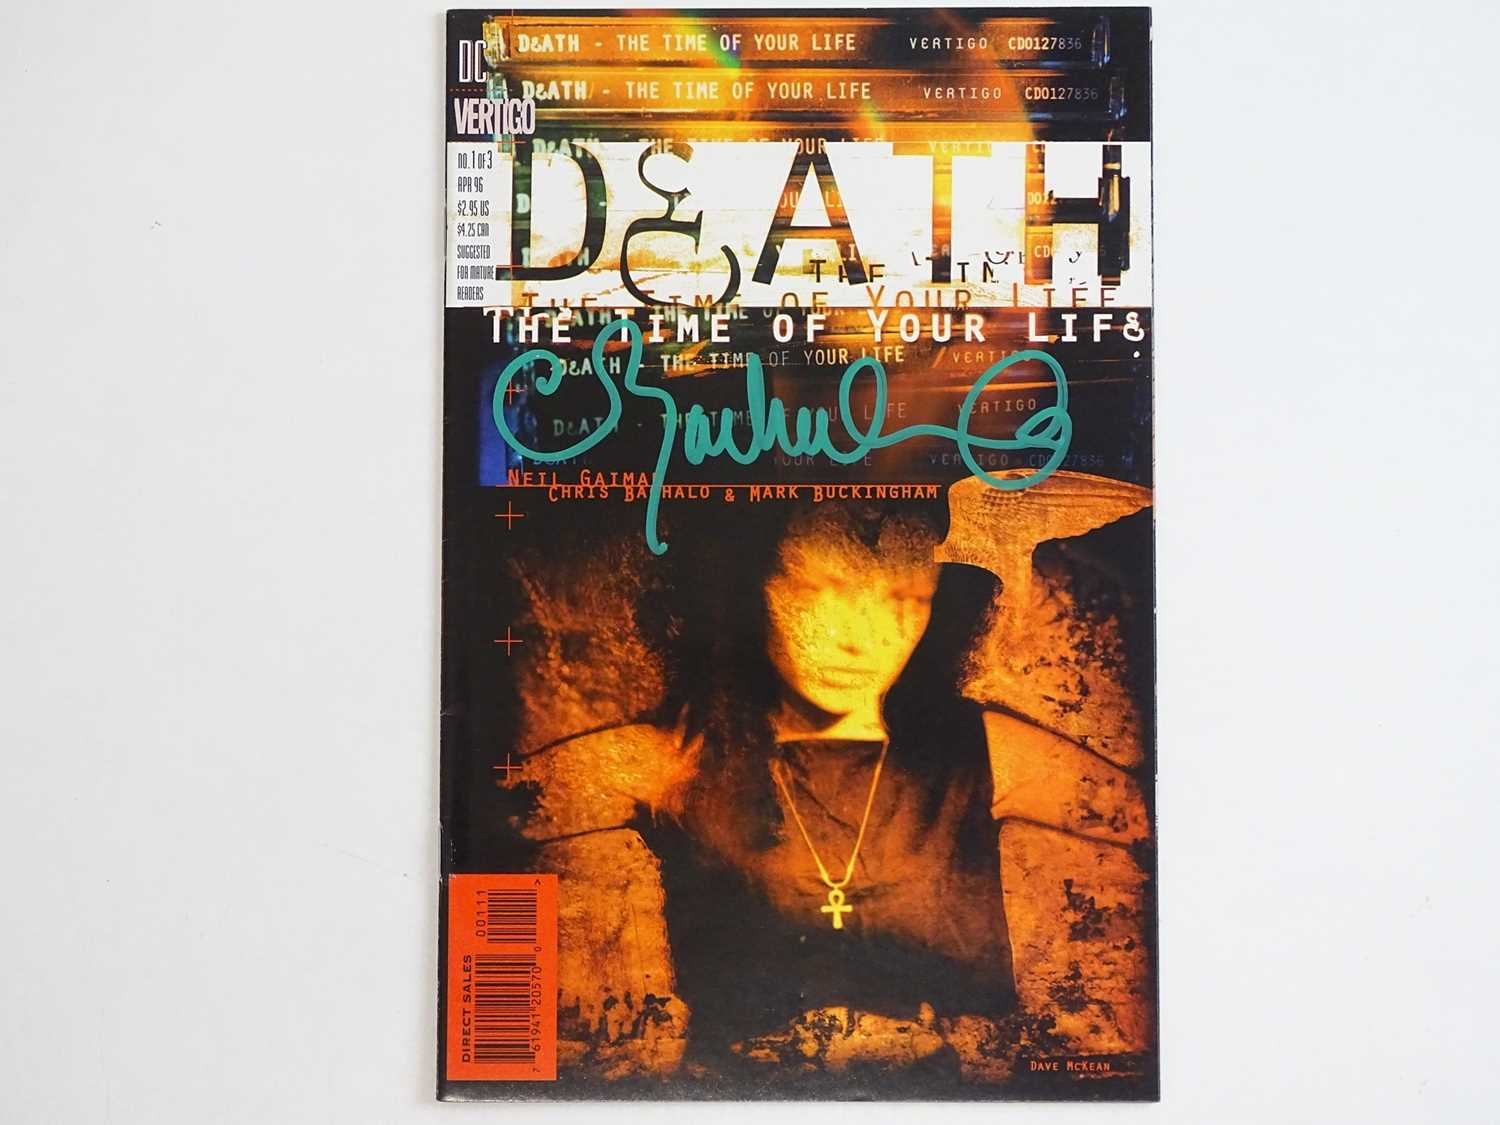 DEATH: THE TIME OF YOUR LIFE #1 - (DC/VERTIGO - 1996) - Signed to Front Cover by Chris Bachalo